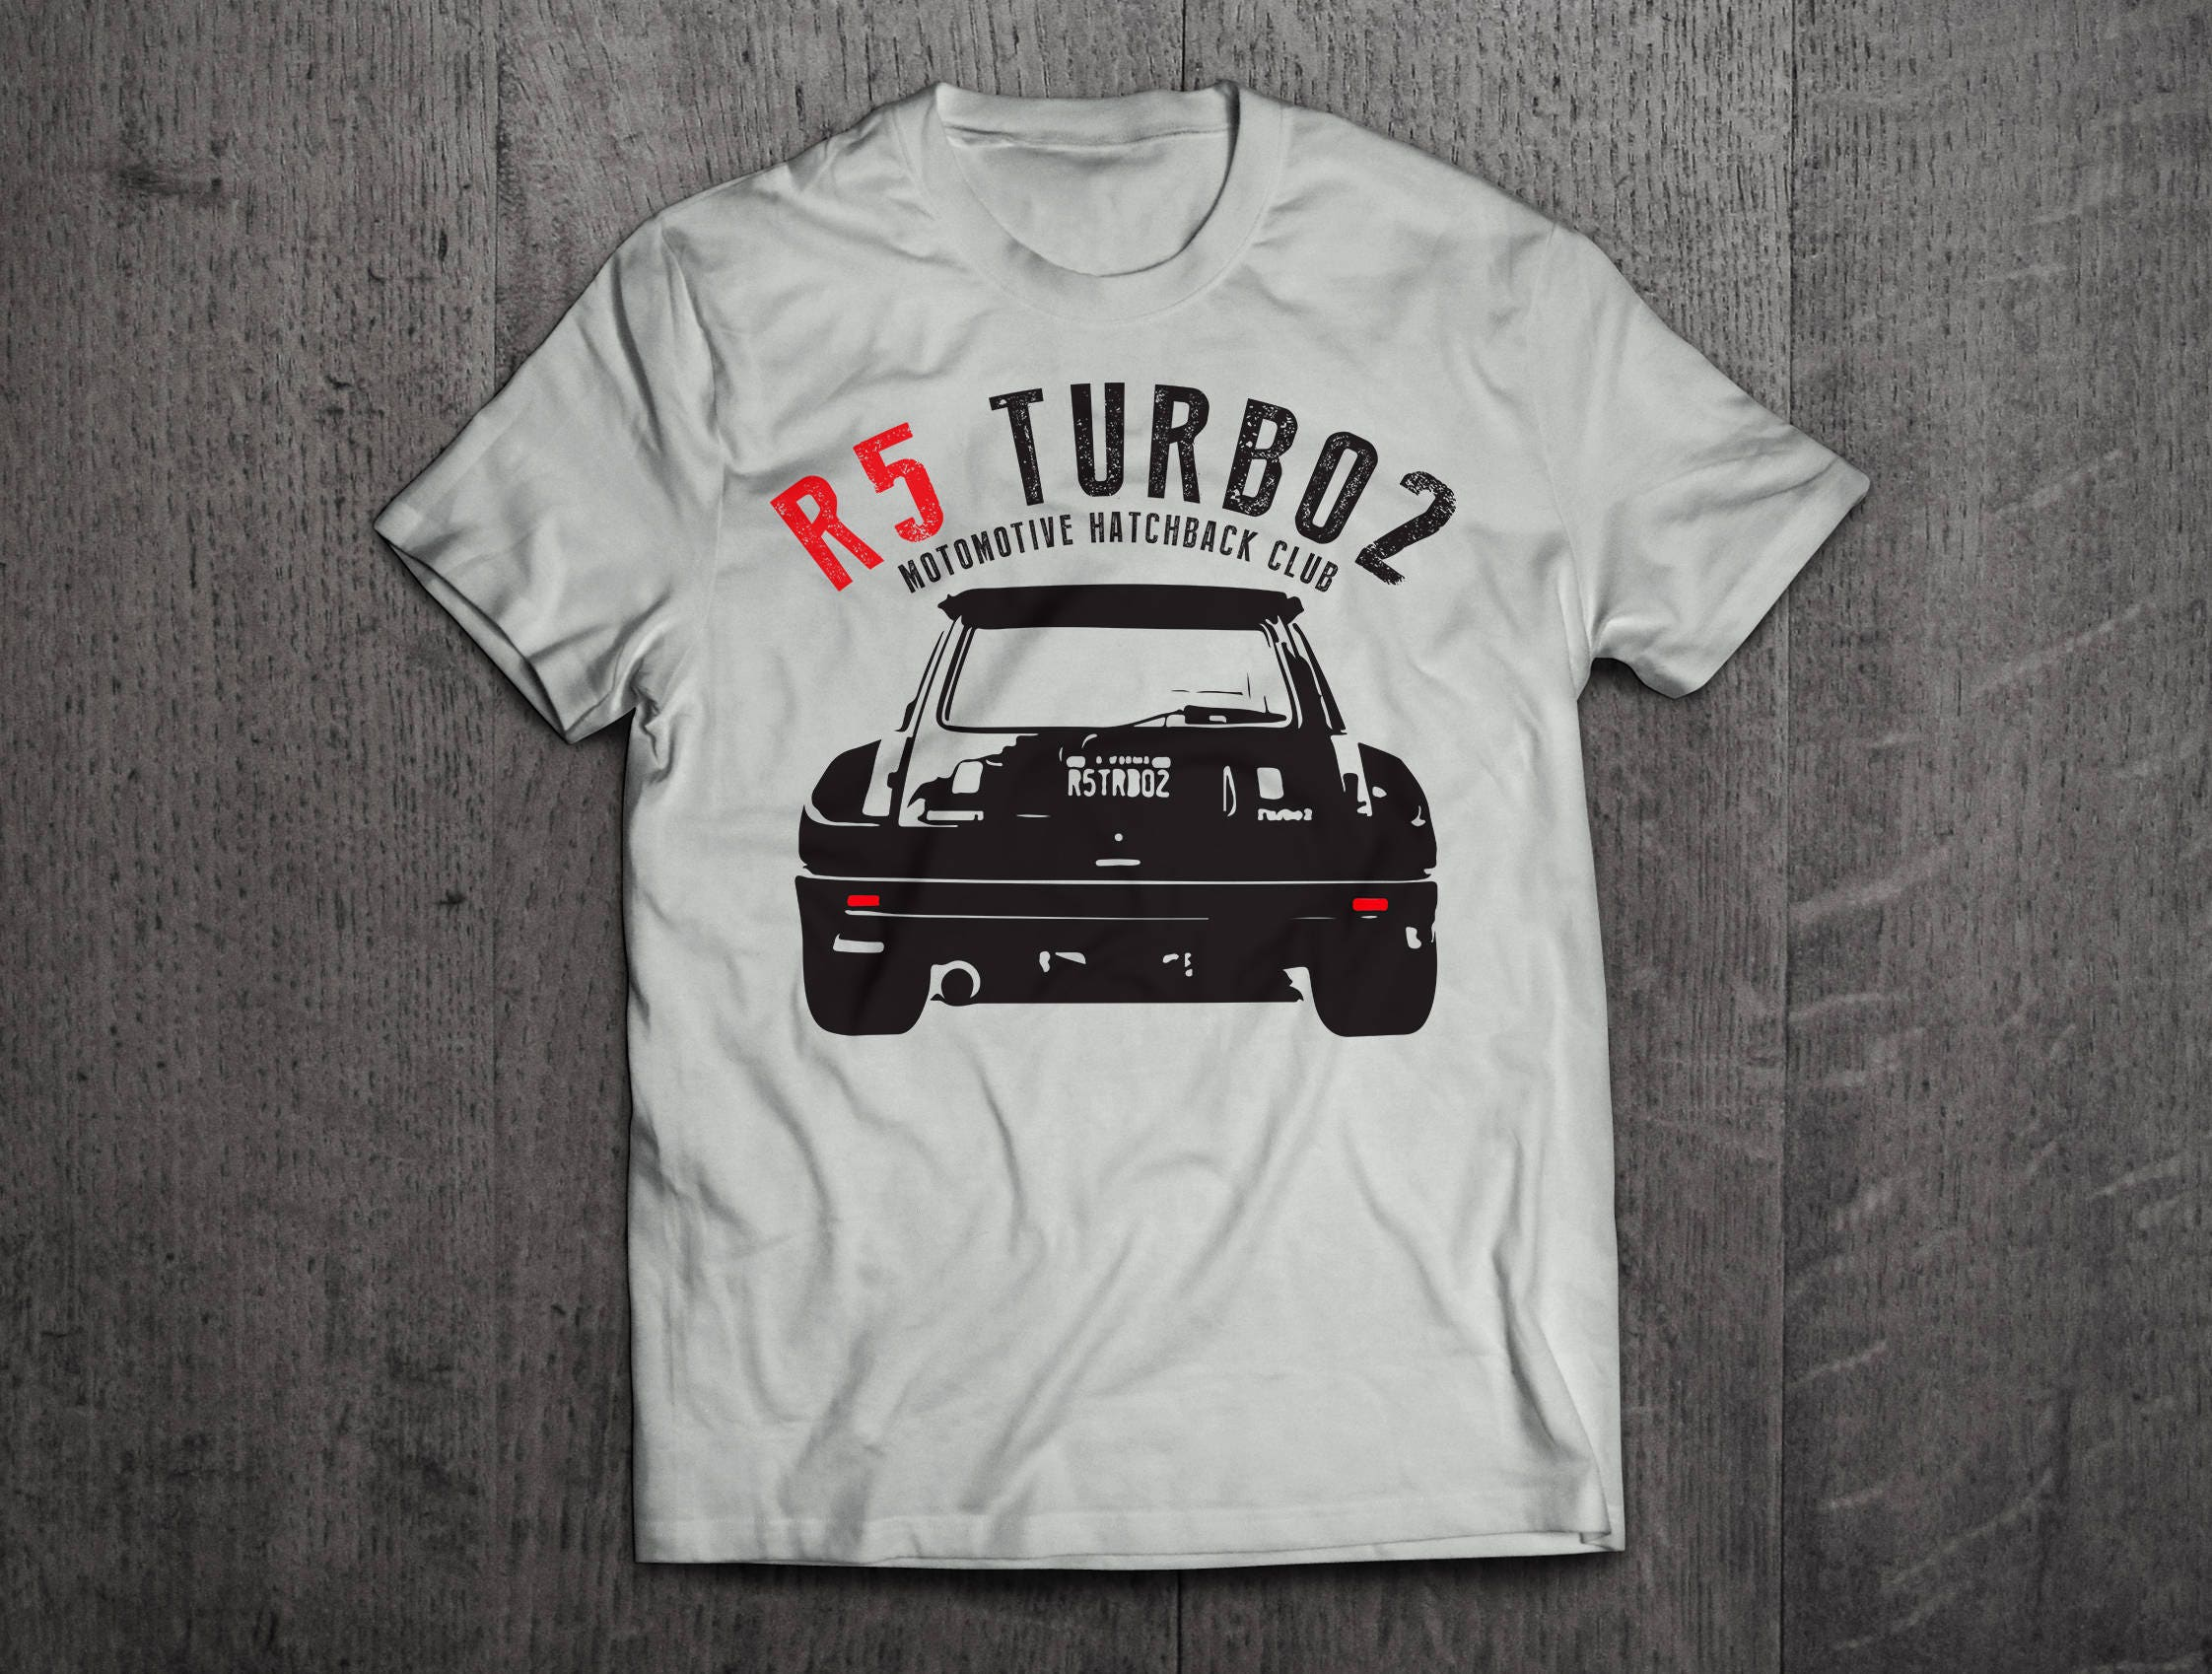 renault shirts renault 5 turbo t shirts classic renault. Black Bedroom Furniture Sets. Home Design Ideas